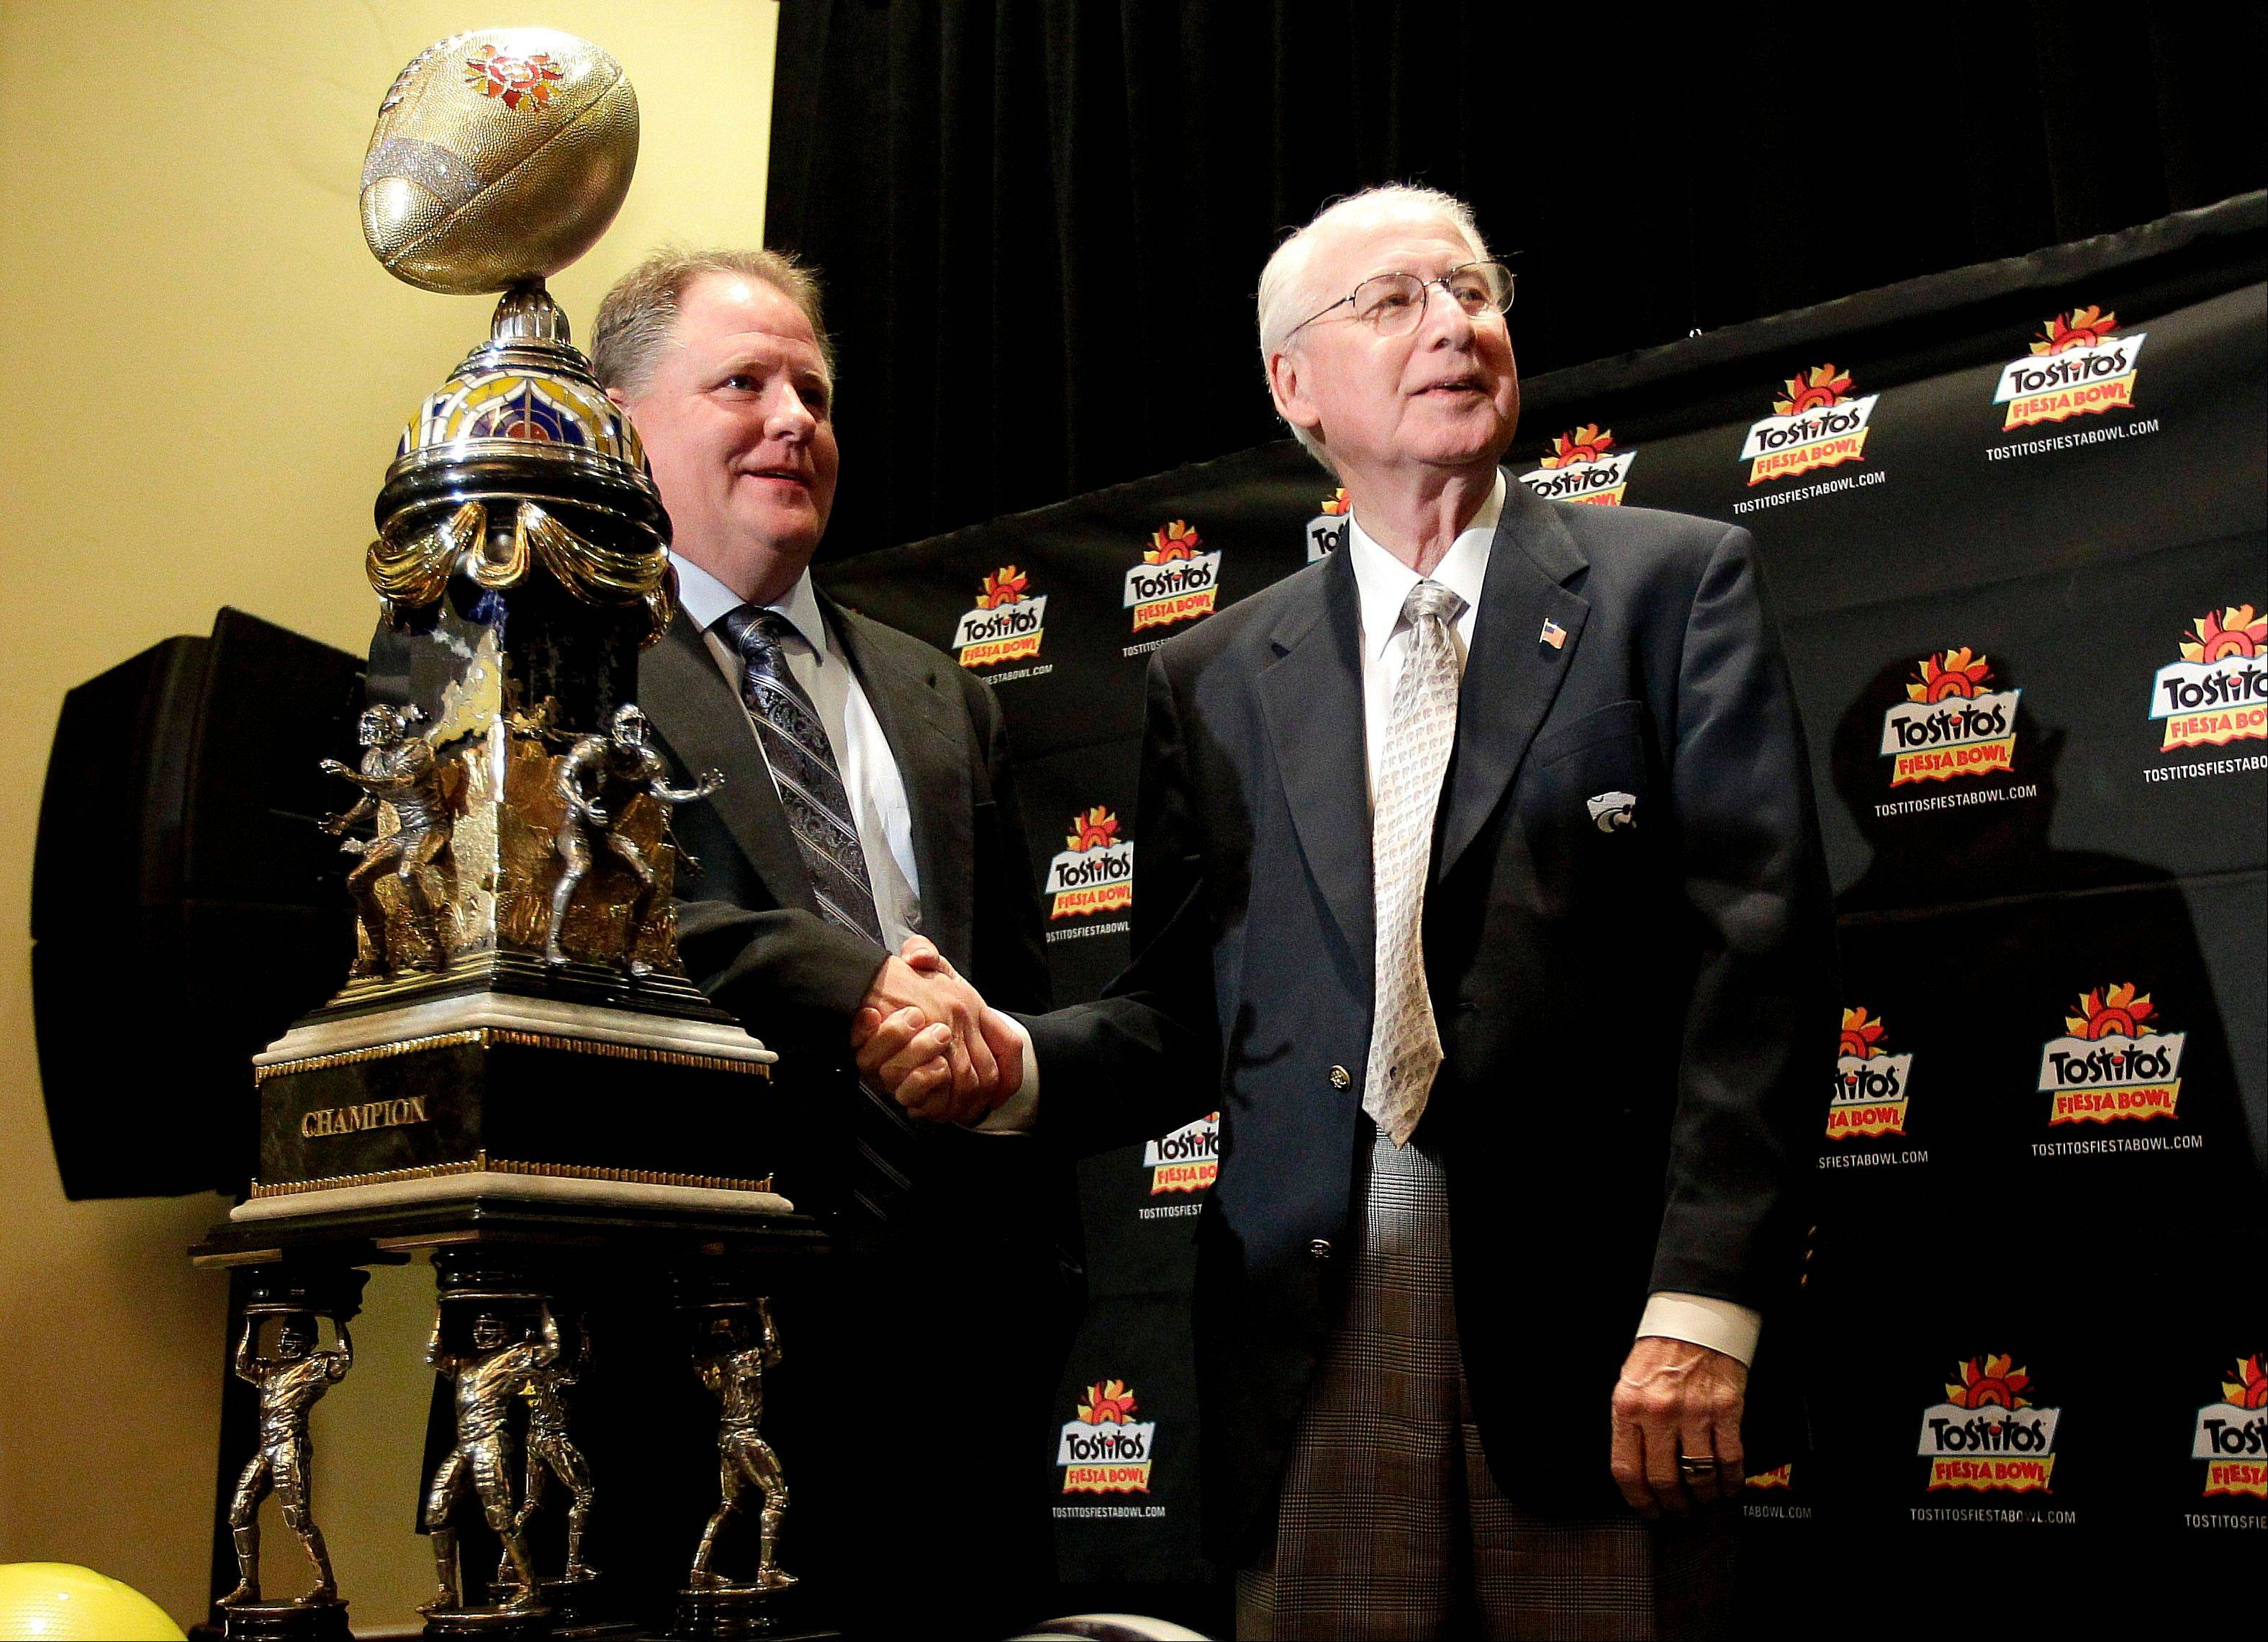 Oregon head coach Chip Kelly, left, and Kansas State head coach Bill Snyder pose Wednesday with the Fiesta Bowl champions trophy in Scottsdale, Ariz. Oregon and Kansas state play Thursday in the Fiesta Bowl.